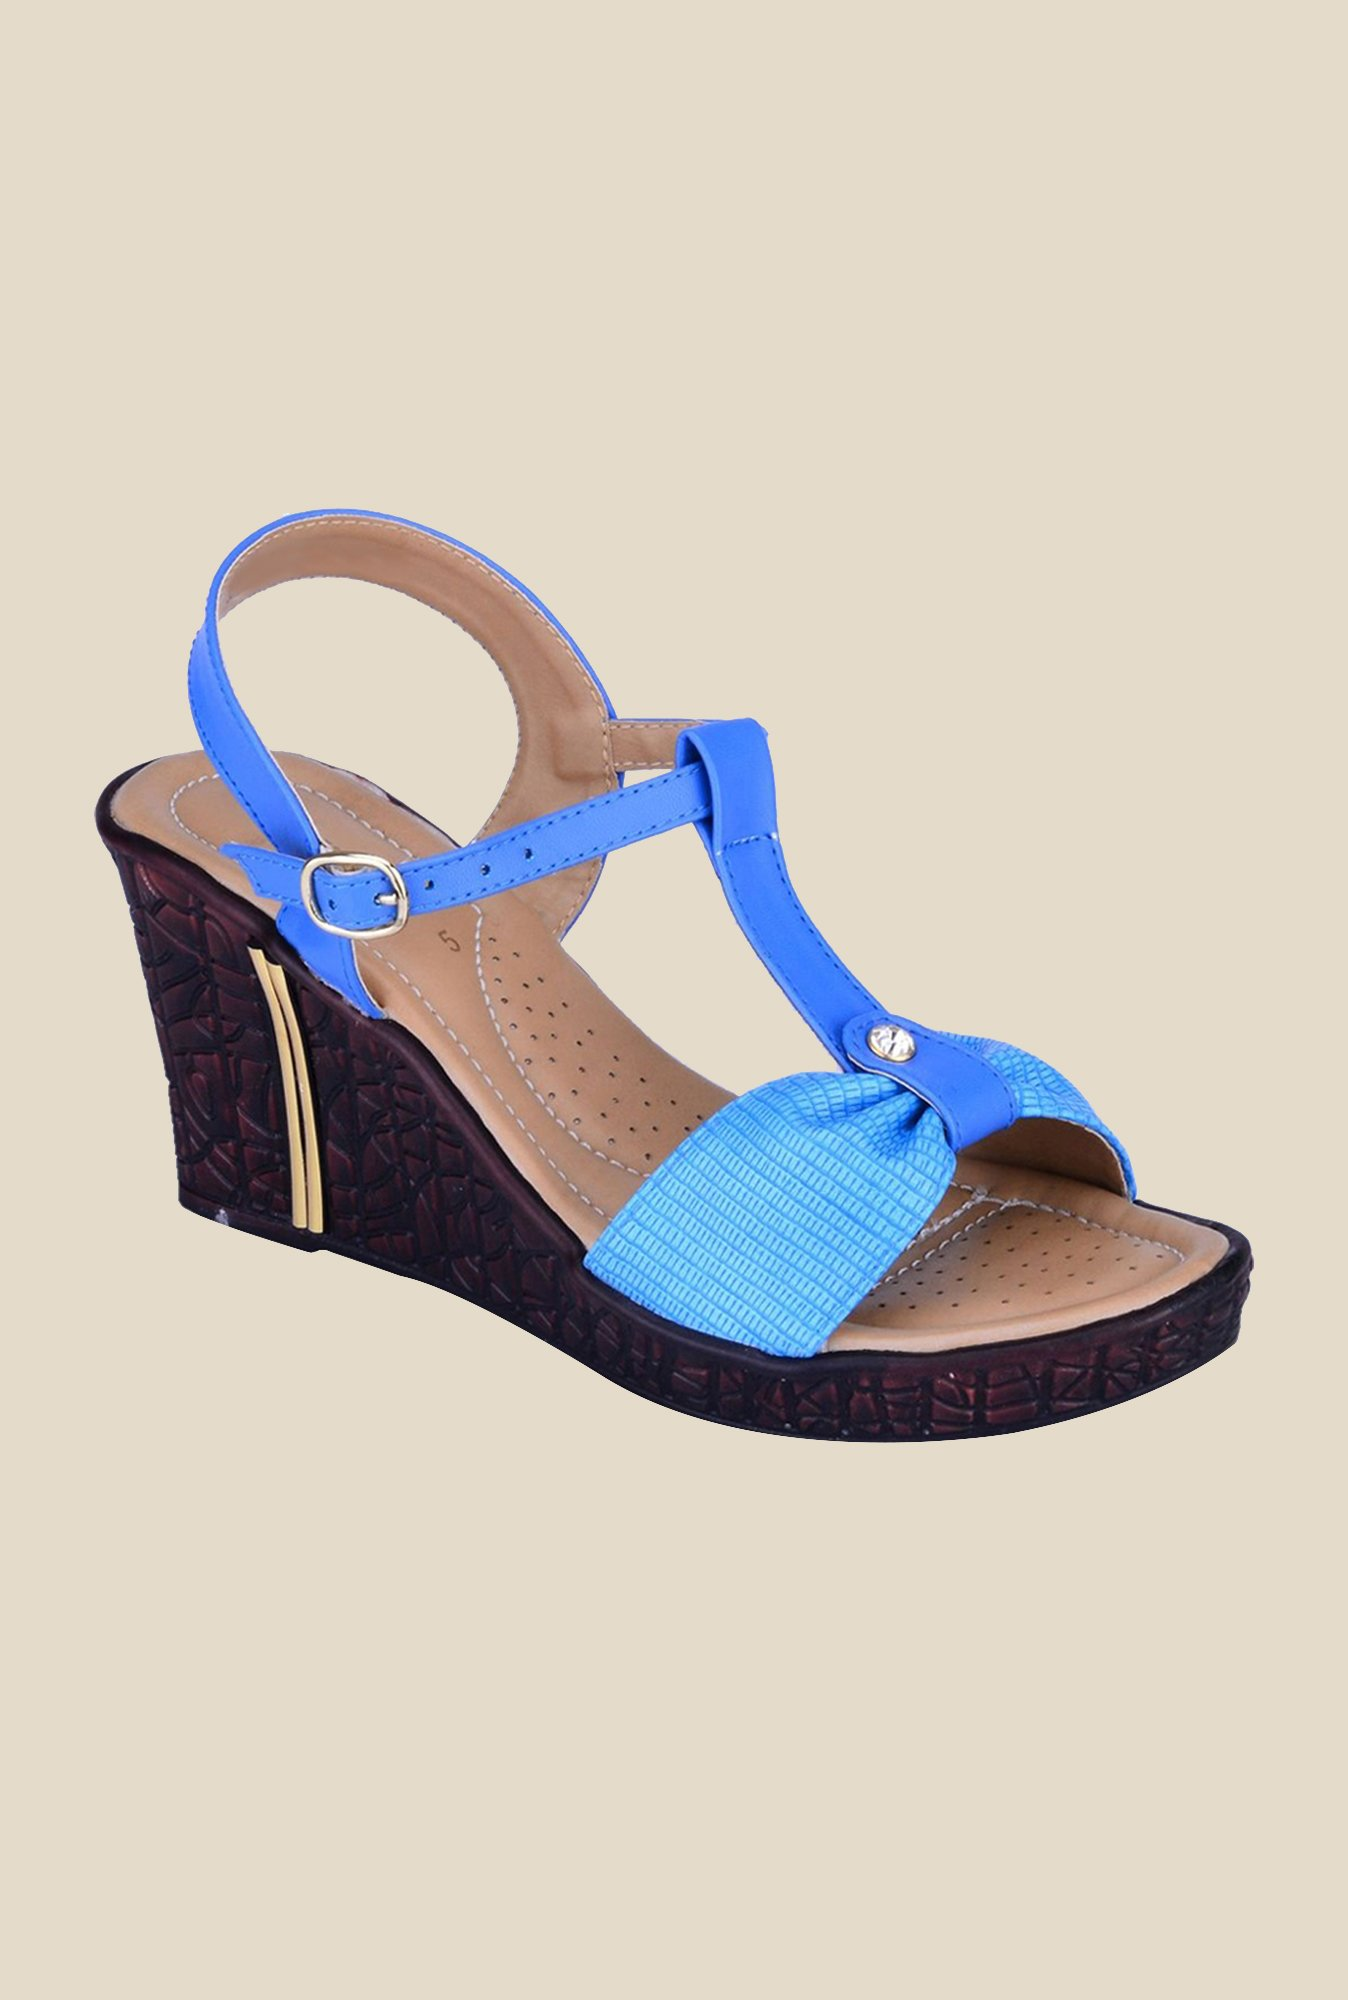 Khadim's Blue Ankle Strap Wedges